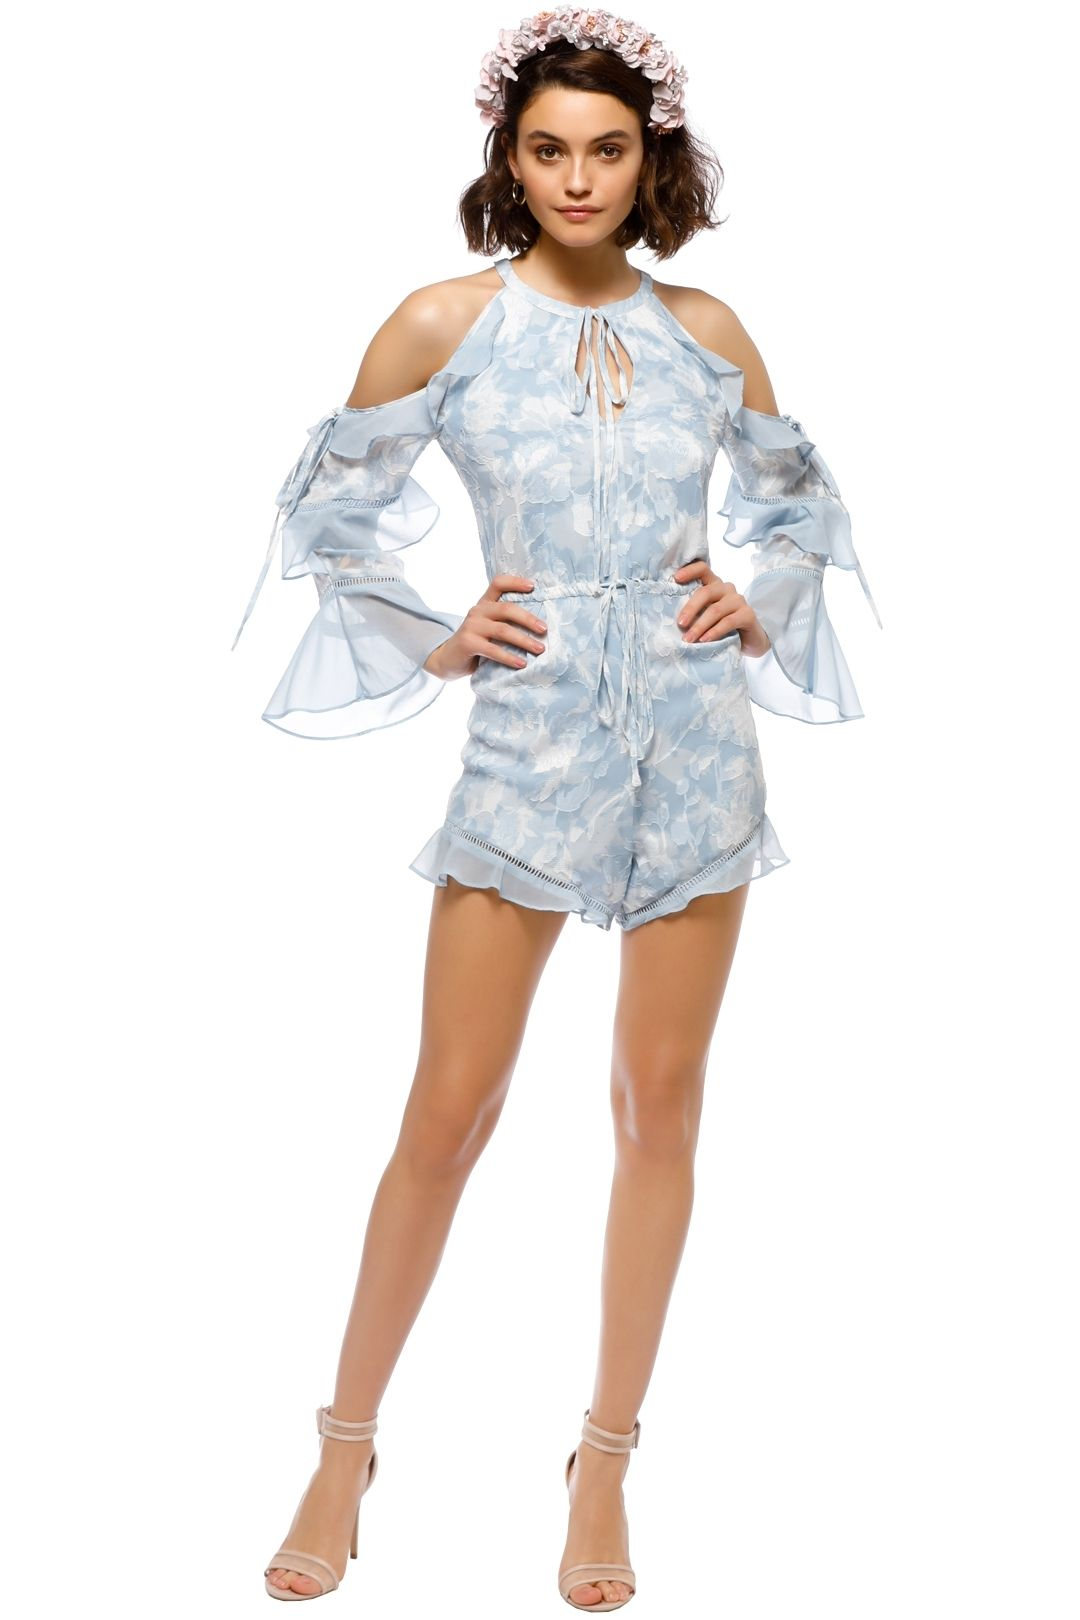 We Are Kindred - Morning Frost Romper - Blue - Front